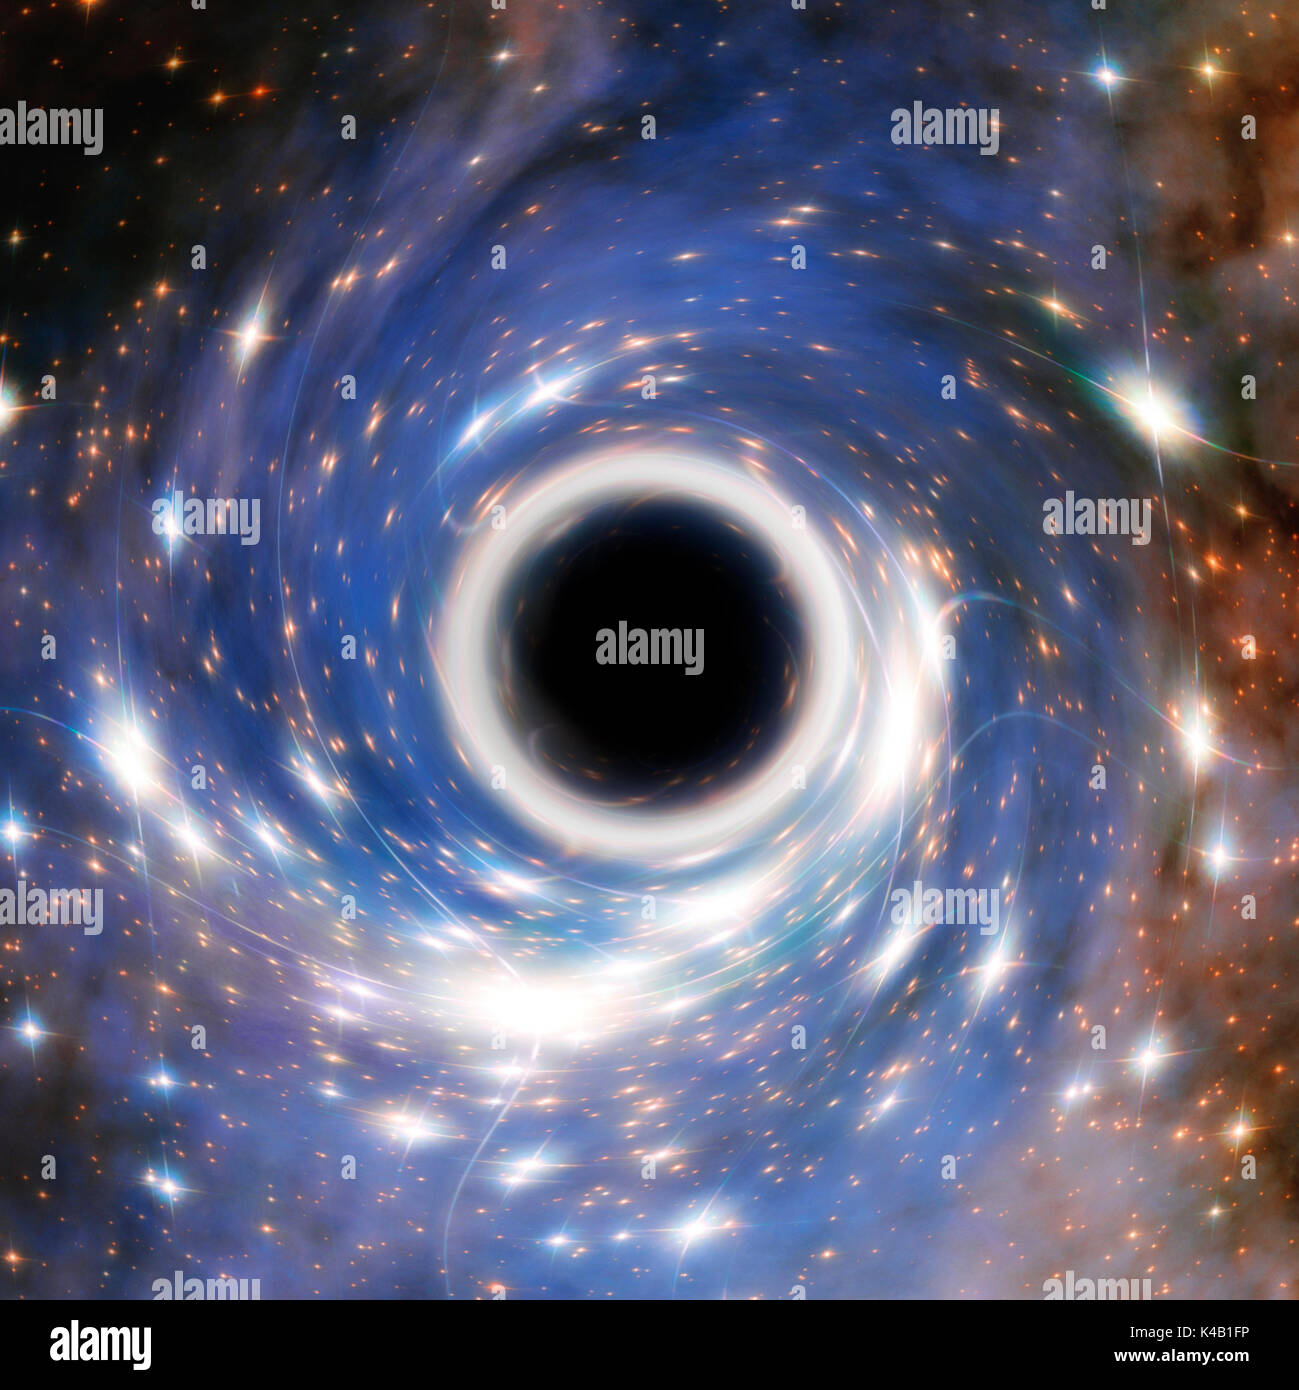 Artistic Representation Of A Cosmic Black Hole  Elements Furnished